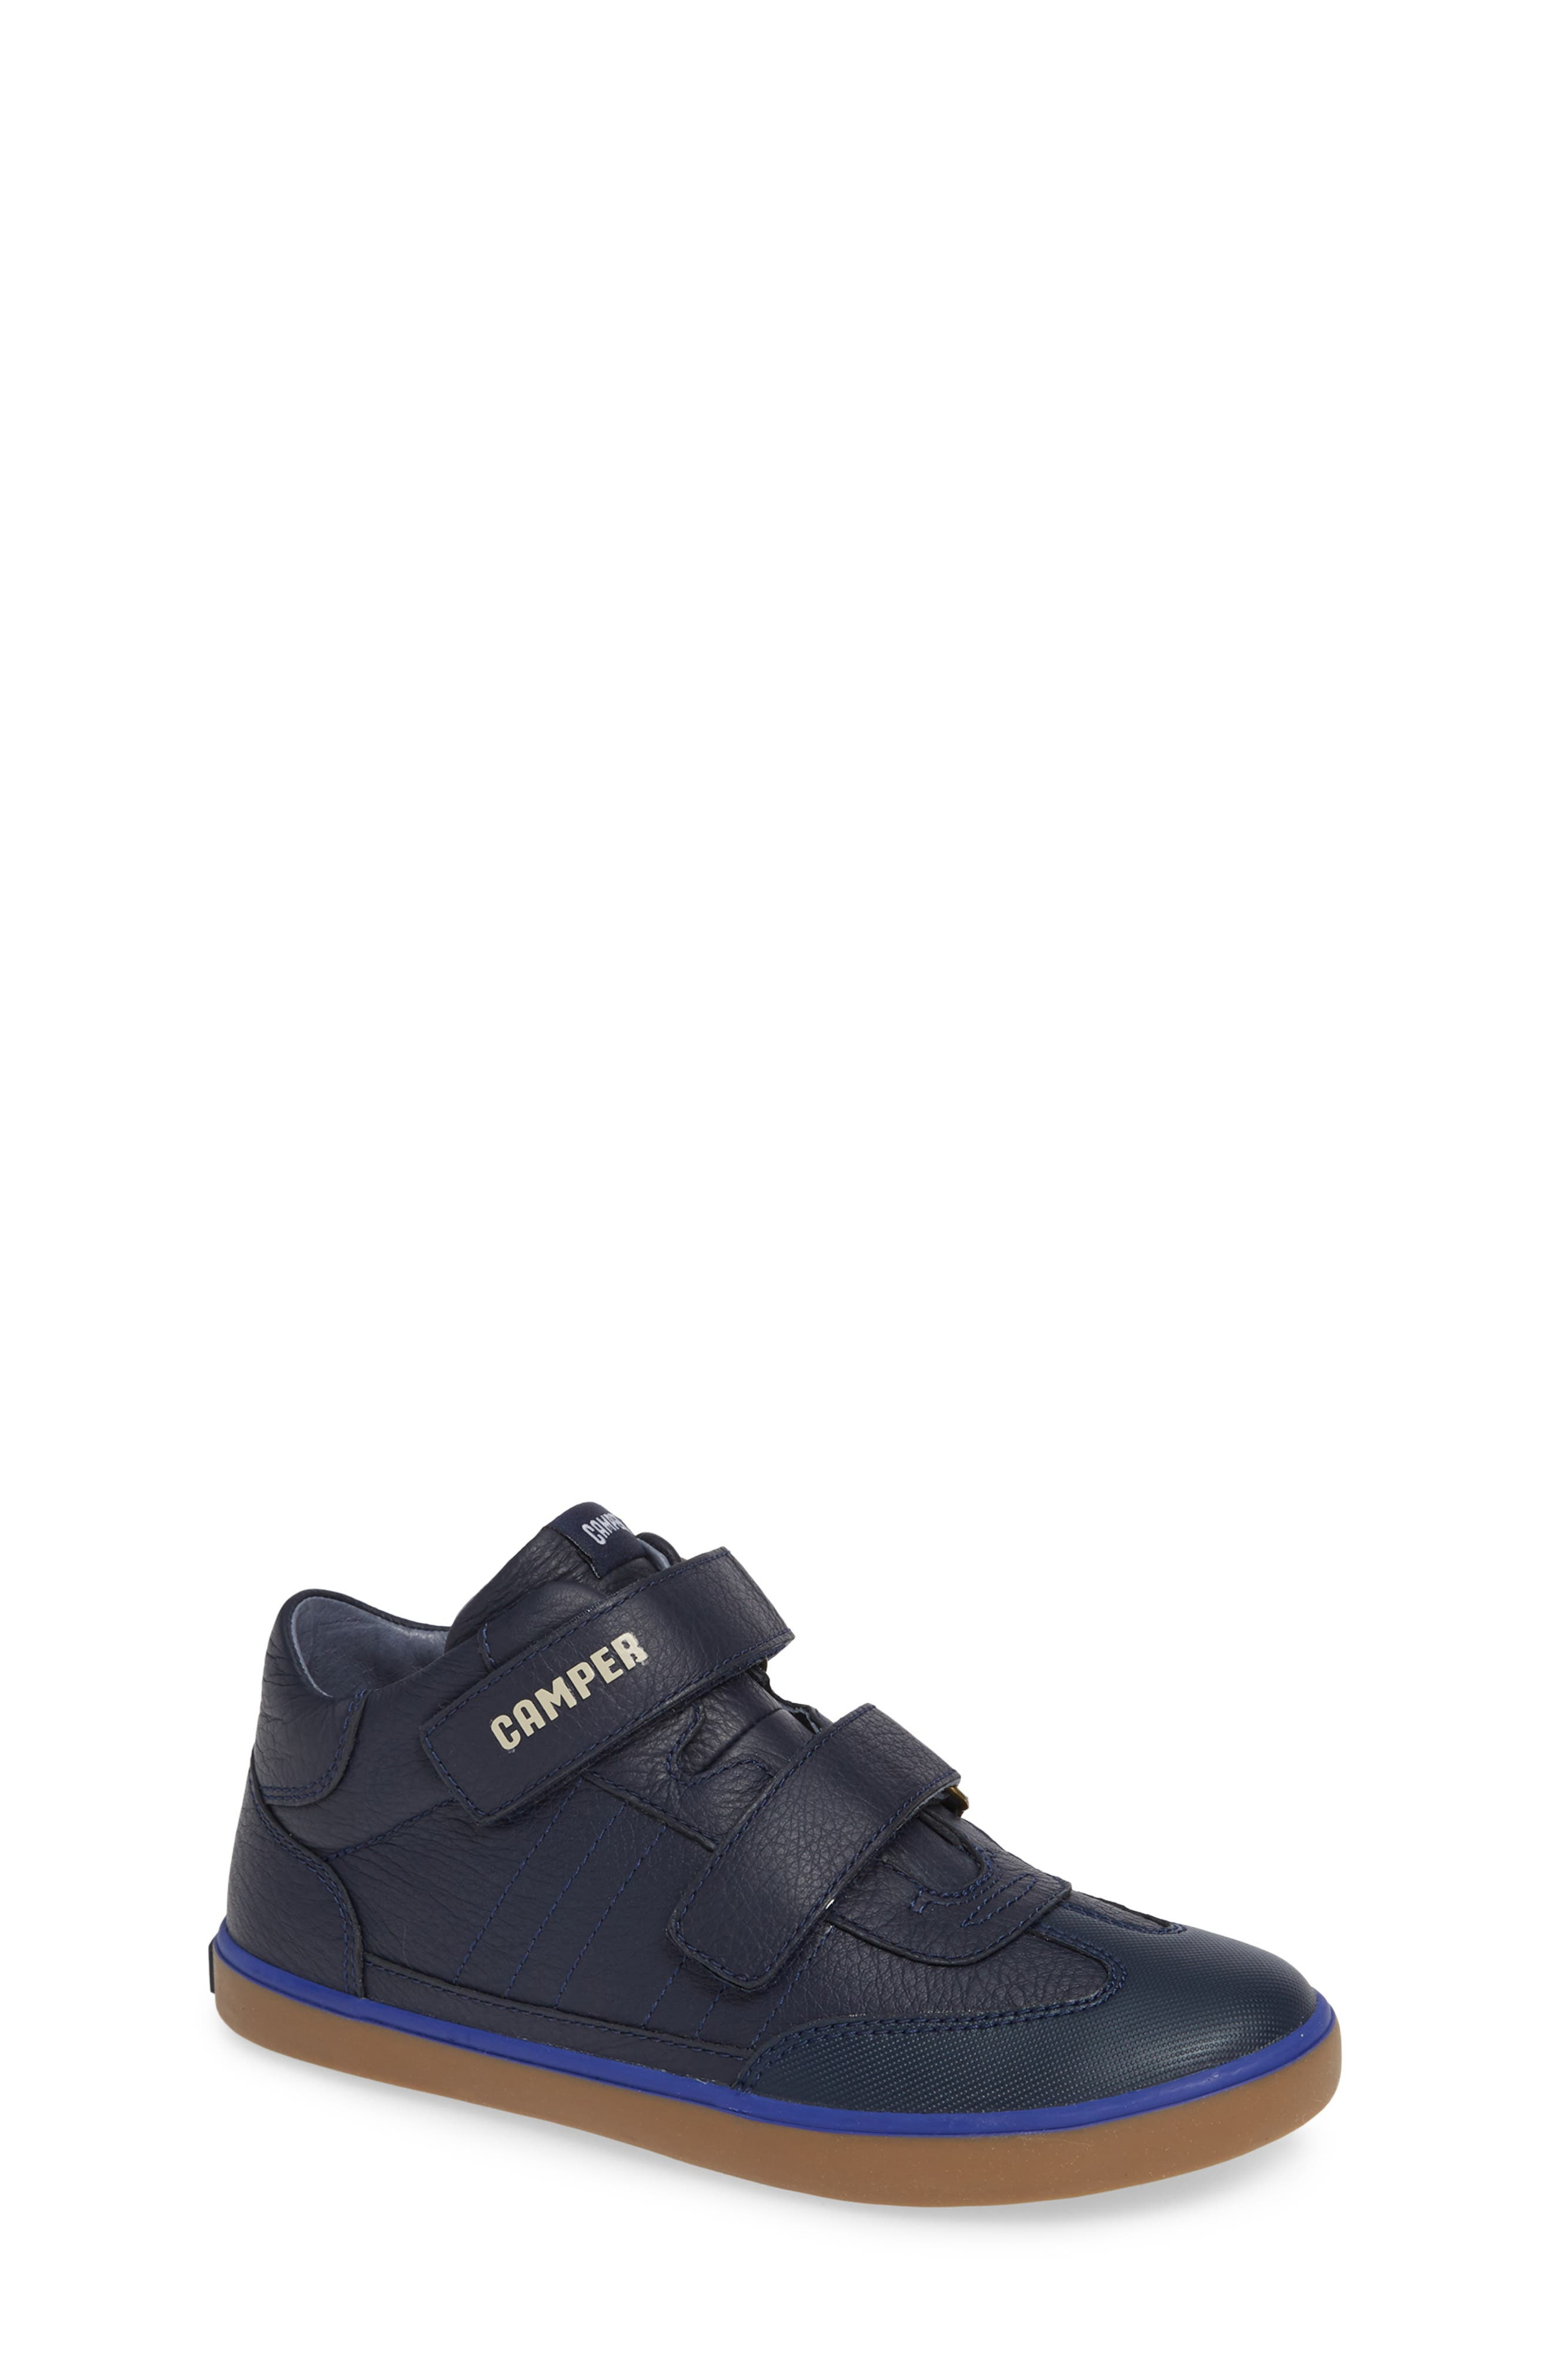 Pursuit Sneaker,                             Main thumbnail 1, color,                             410